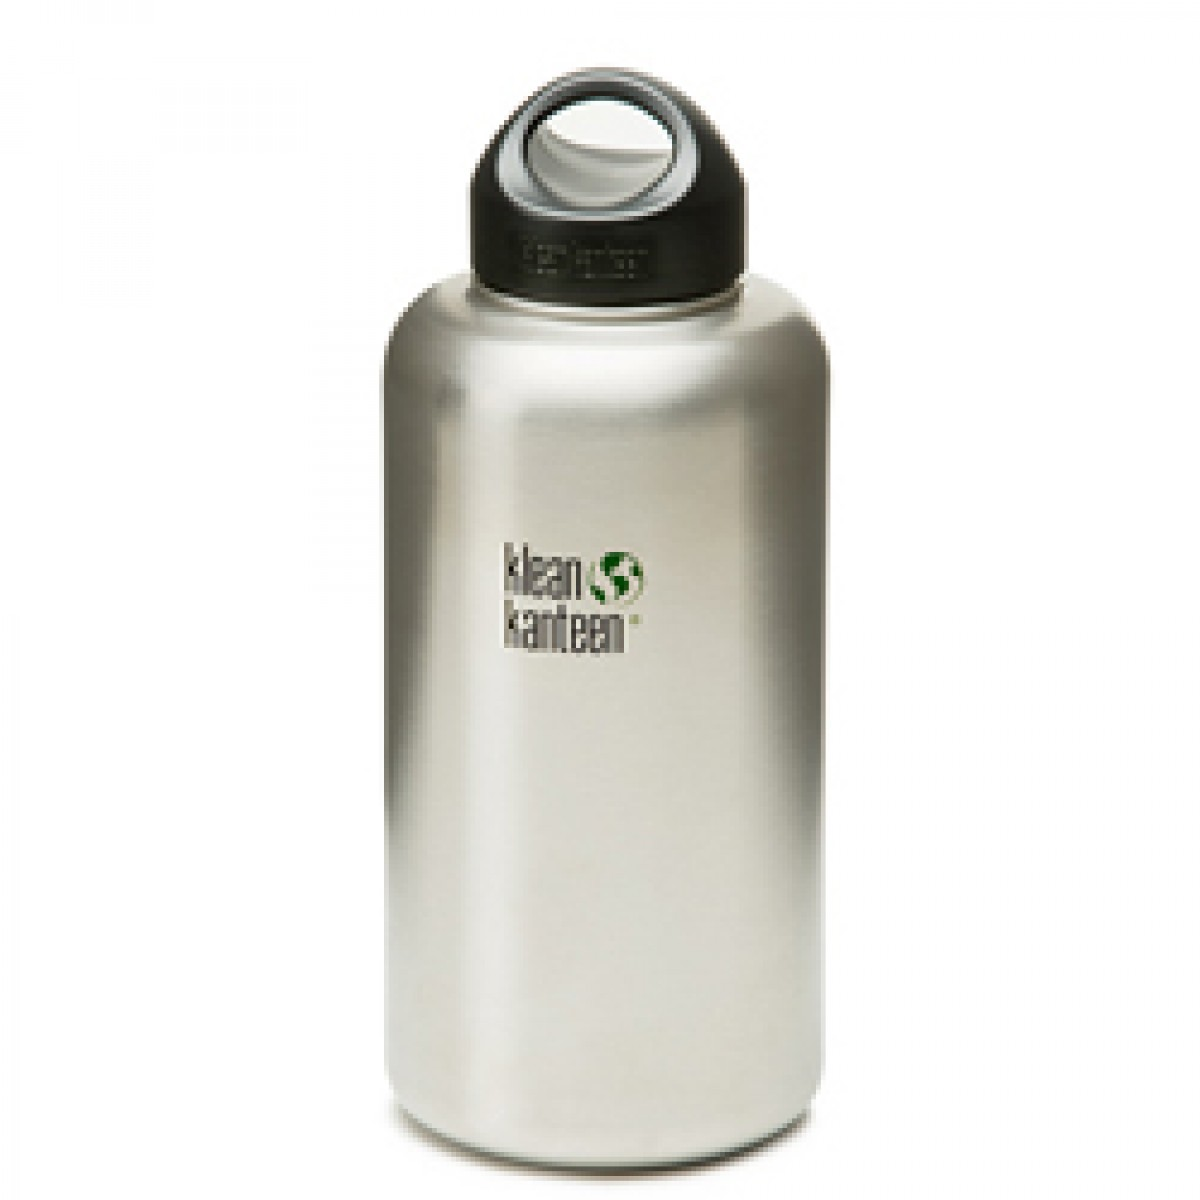 Klean Kanteen K64WSSL Stainless Steel Wide Mouth Water Bottle: 64 Ounce w/Loop-capUP TO 70% OFFTHE FILTERSYOU NEEDTHANK YOU